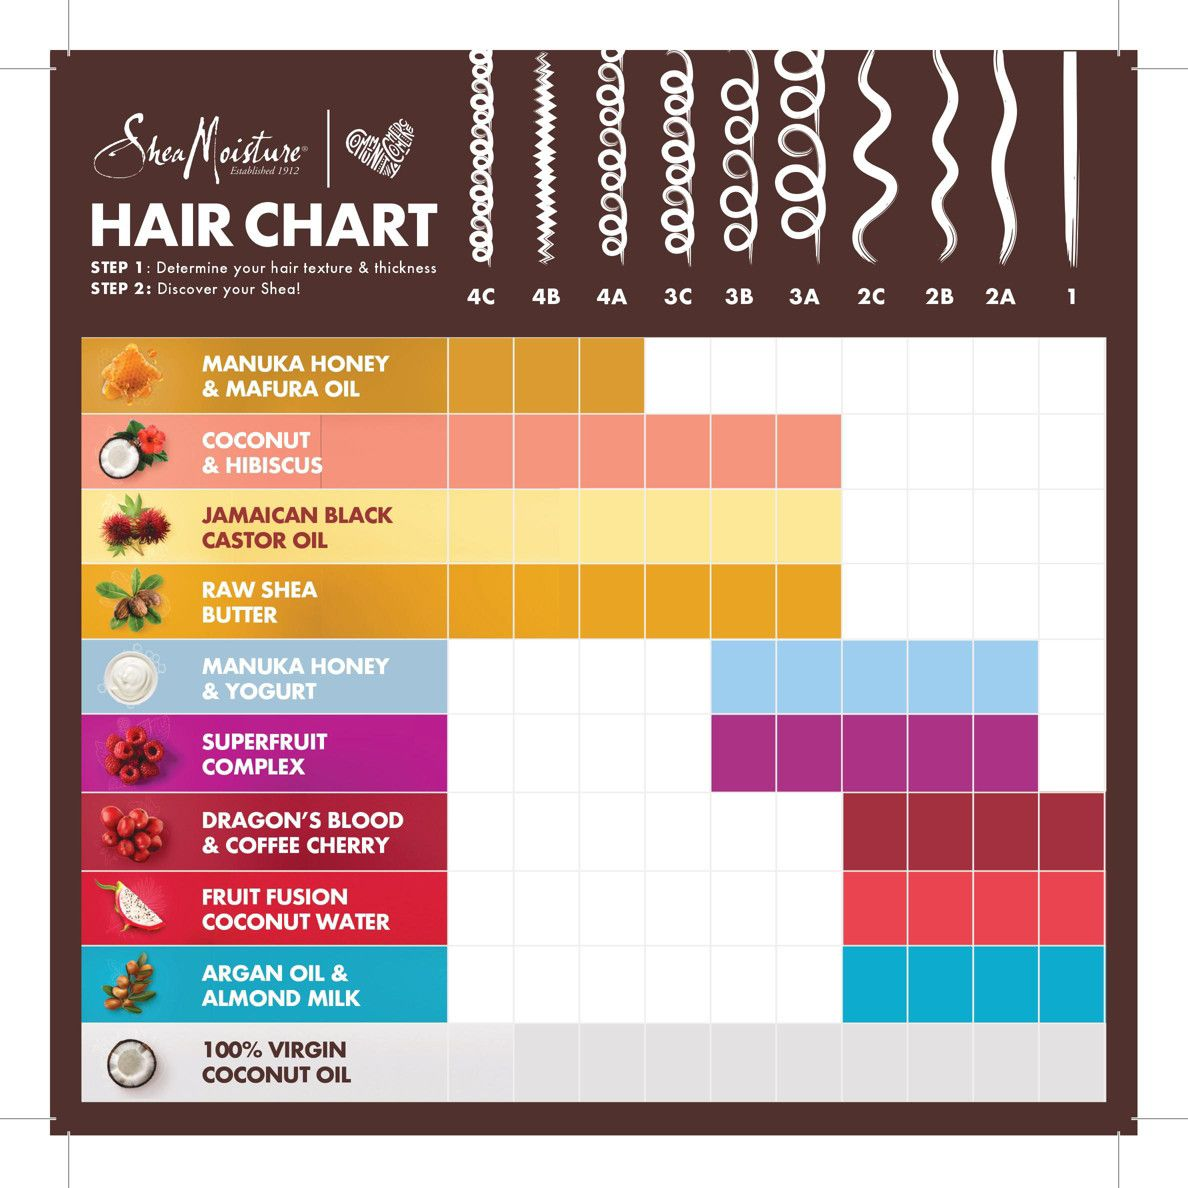 Shea Moisture Hair Chart 1 188 1 188 Pixels With Images Hair